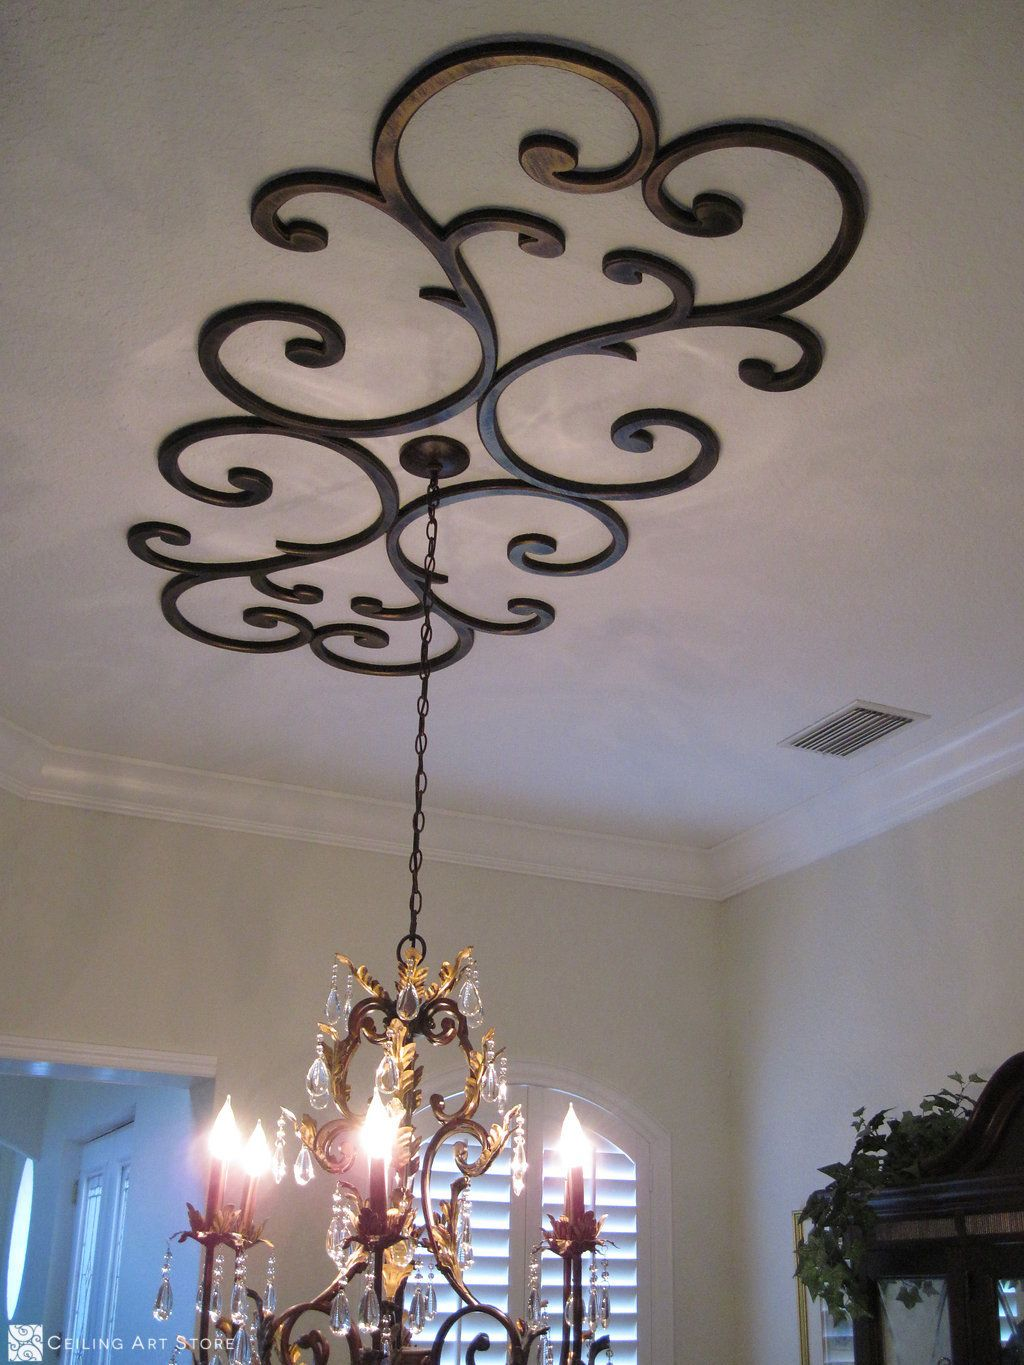 Ceiling Art Faux Iron Faux Plaster Decor By Ceiling Art Store